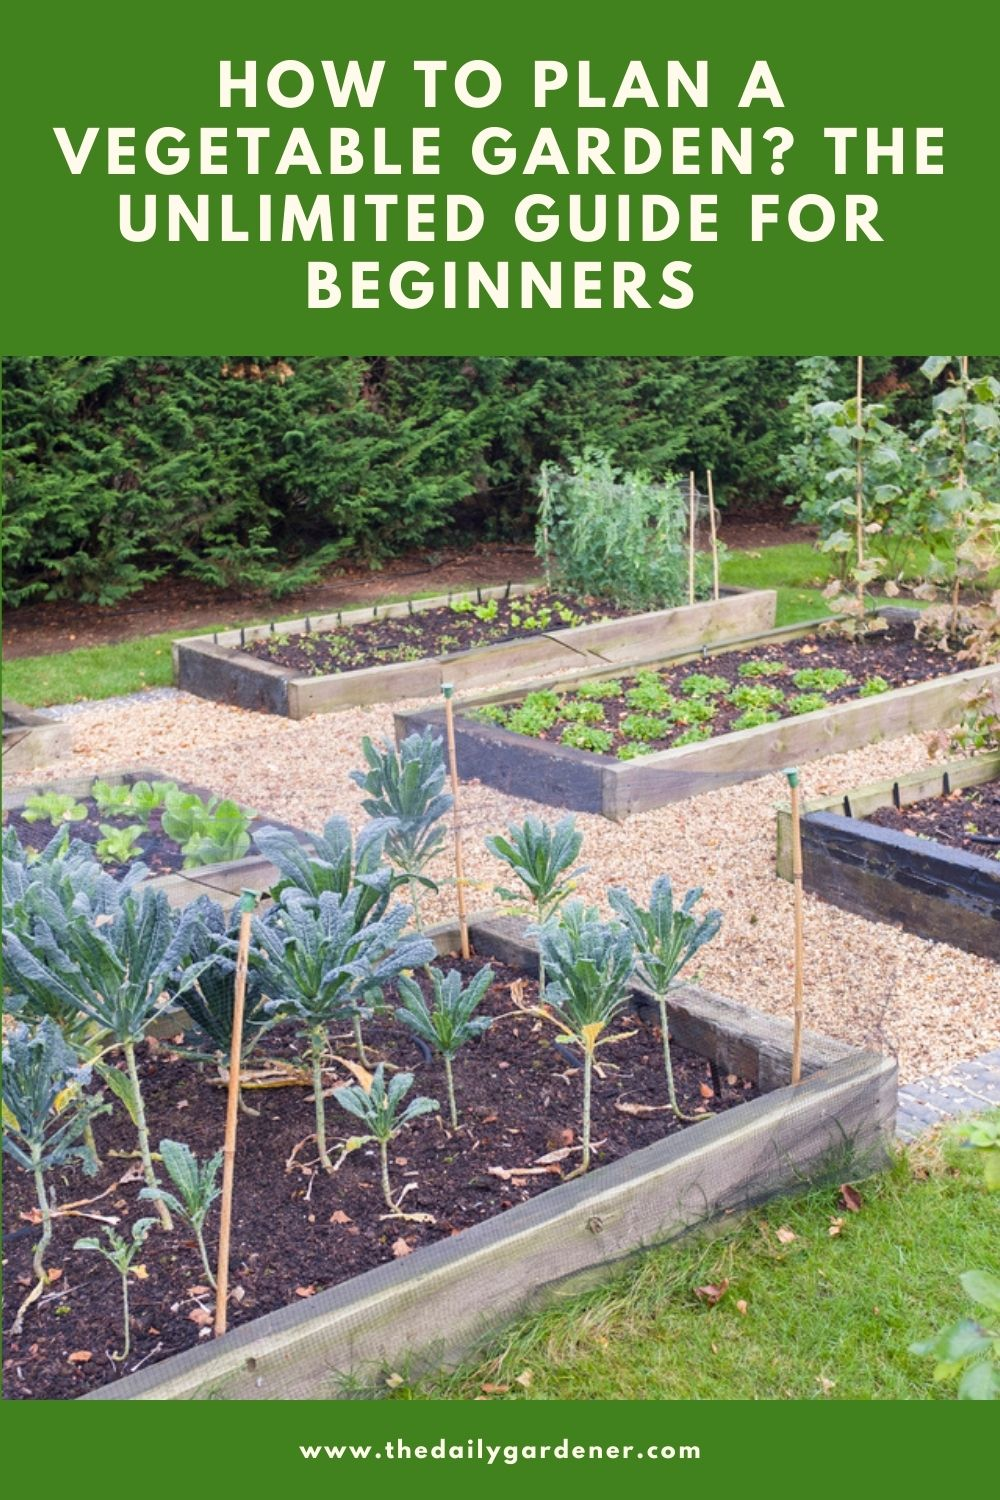 How to Plan a Vegetable Garden The Unlimited Guide for Beginners 1